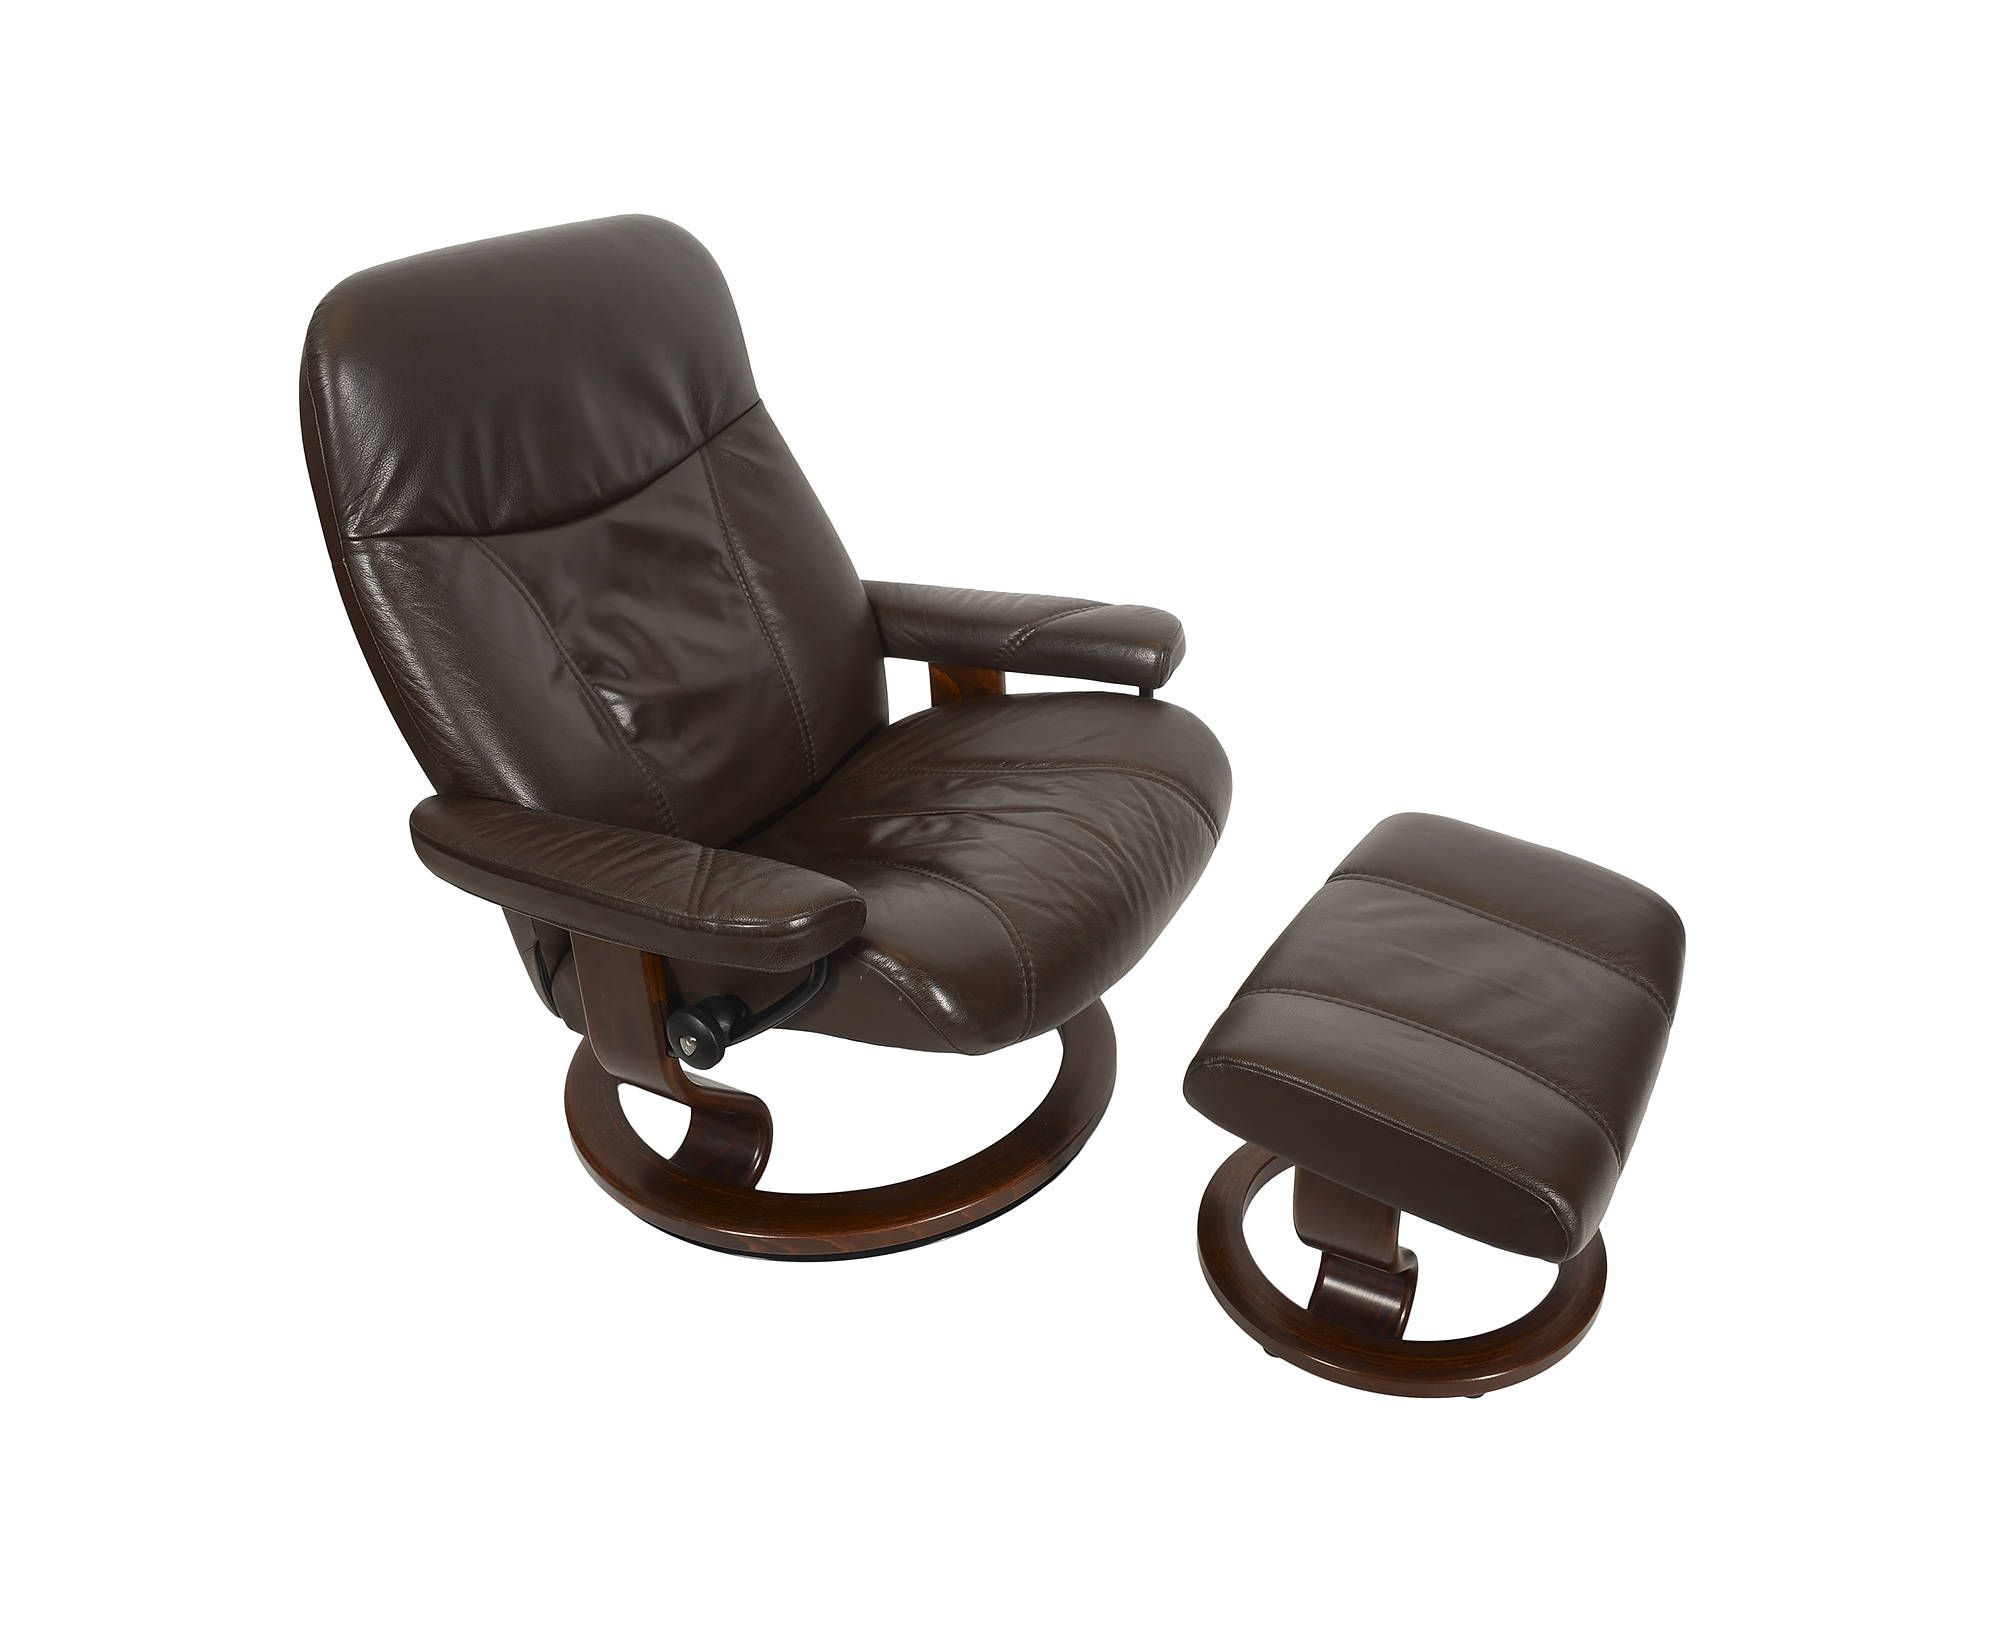 Leather Ekornes Stressless Reclining Chair Ottoman Norway Mid